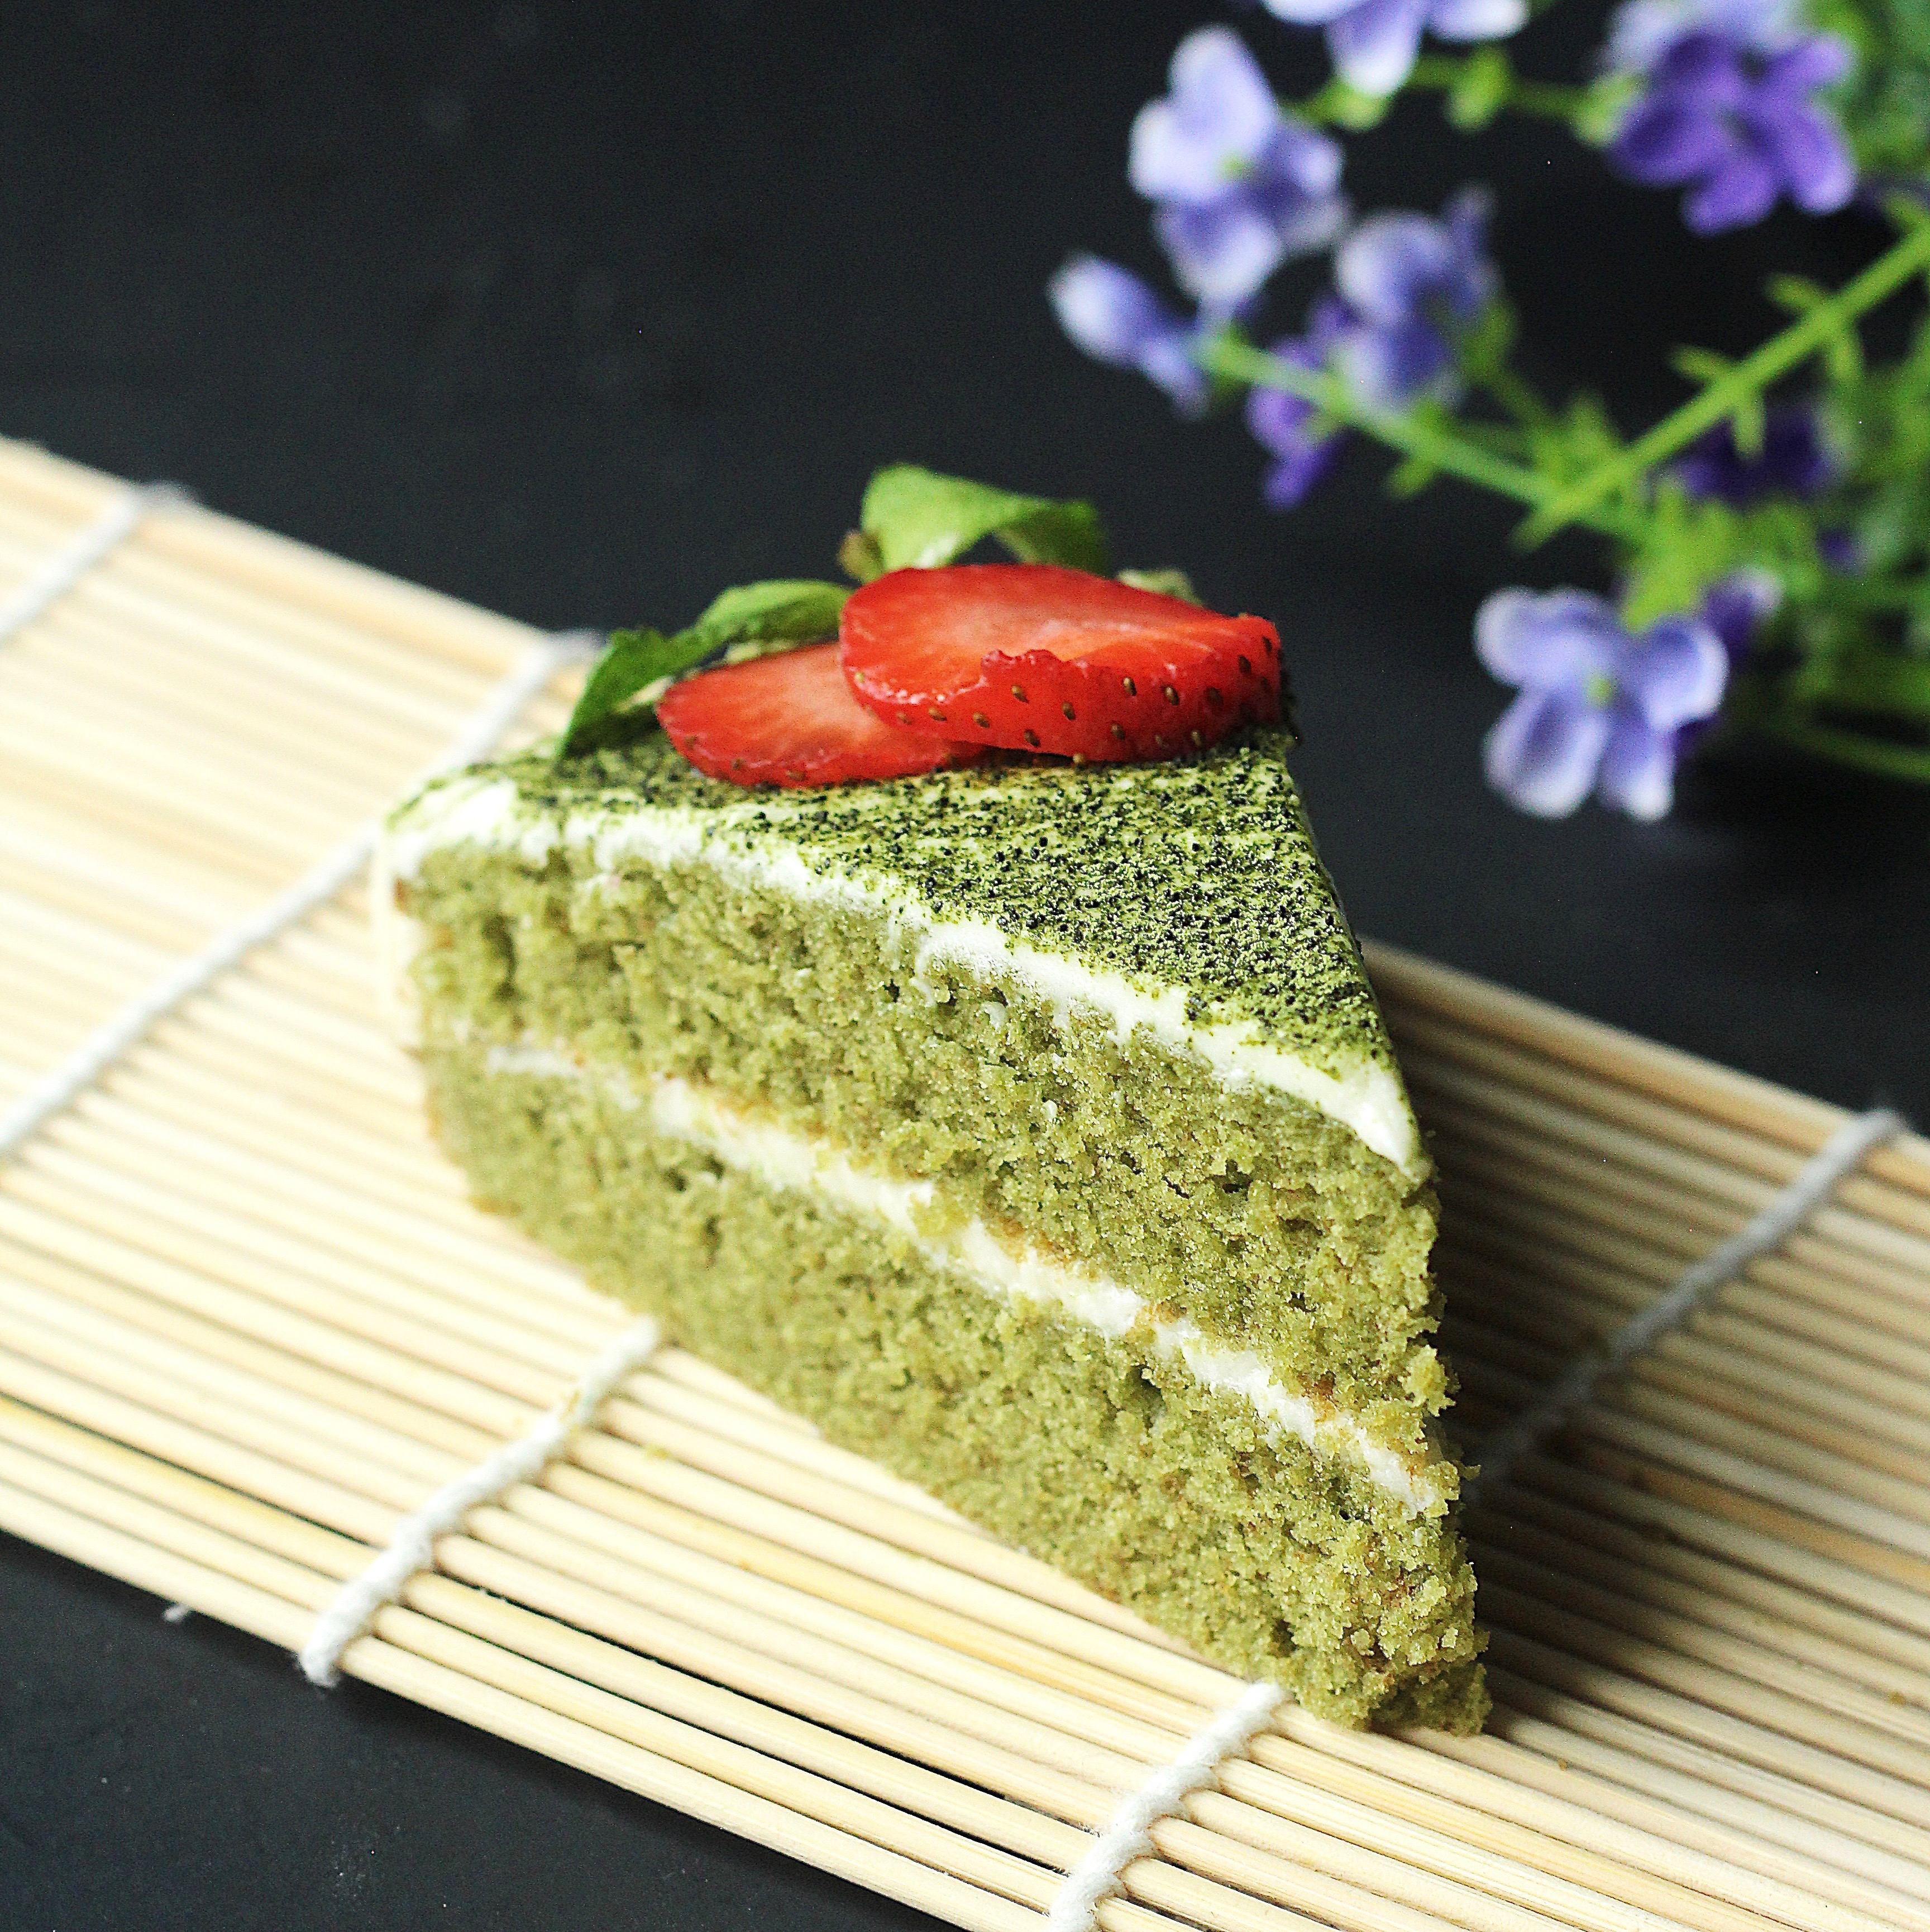 Green Tea Matcha Cake With White Chocolate Frosting Recipe